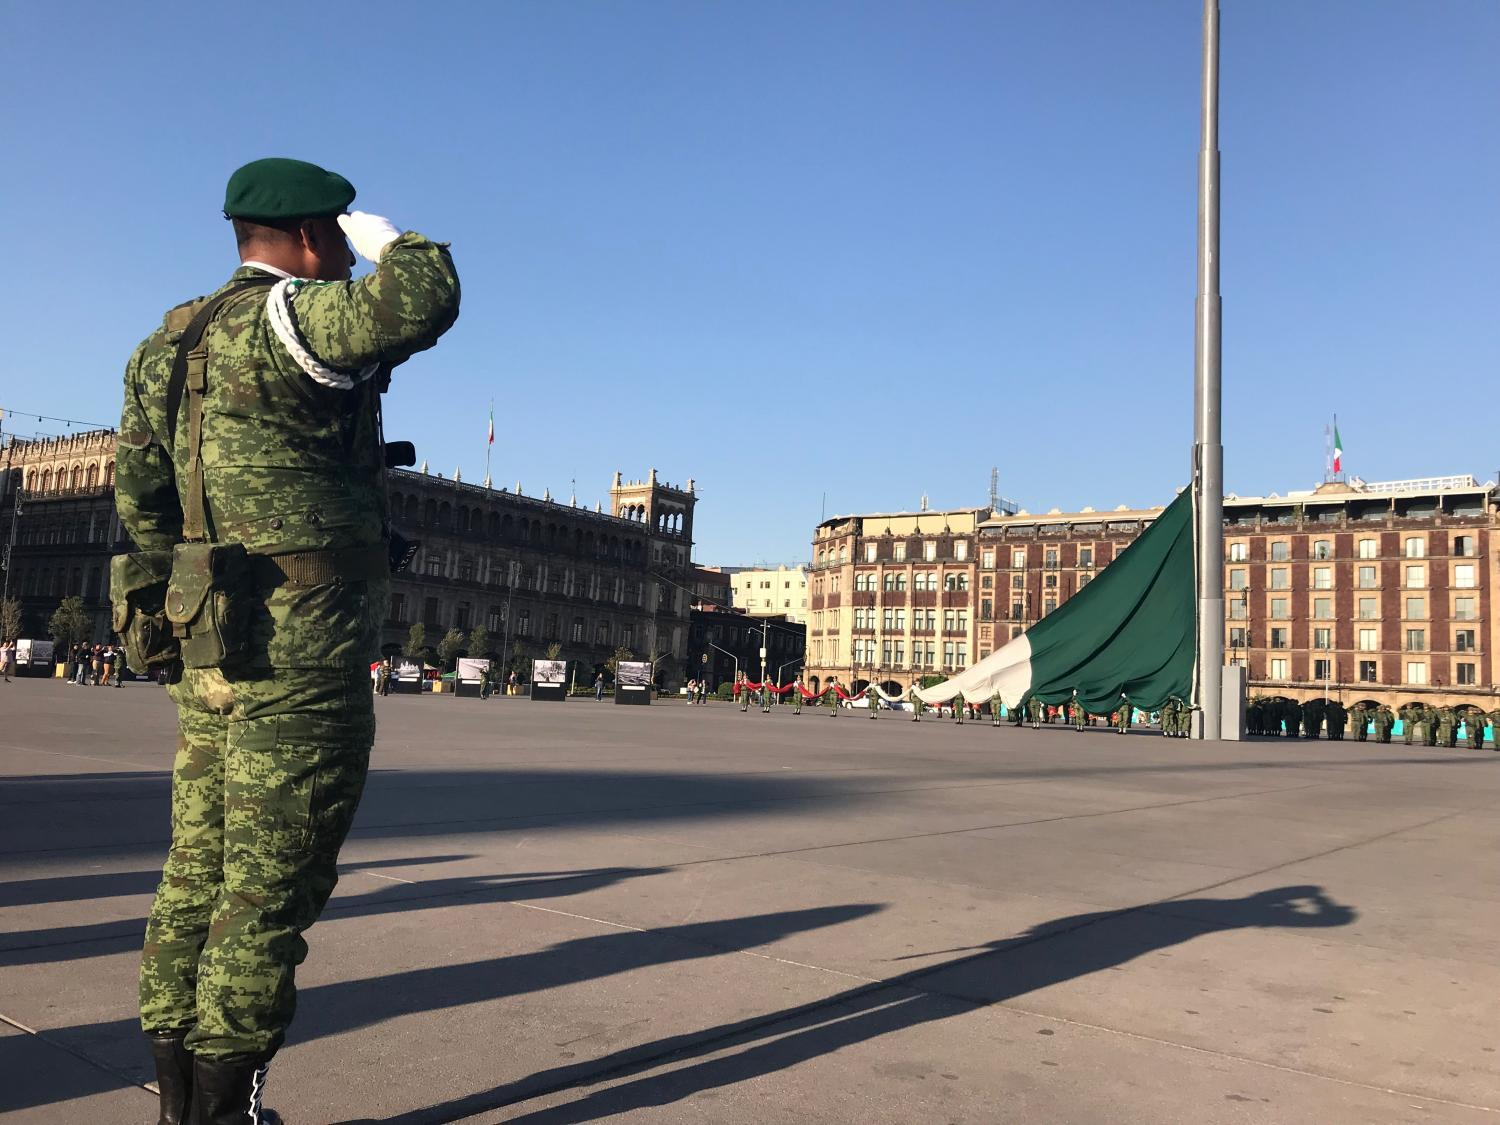 Mexican military police soldiers raising the Mexican flag